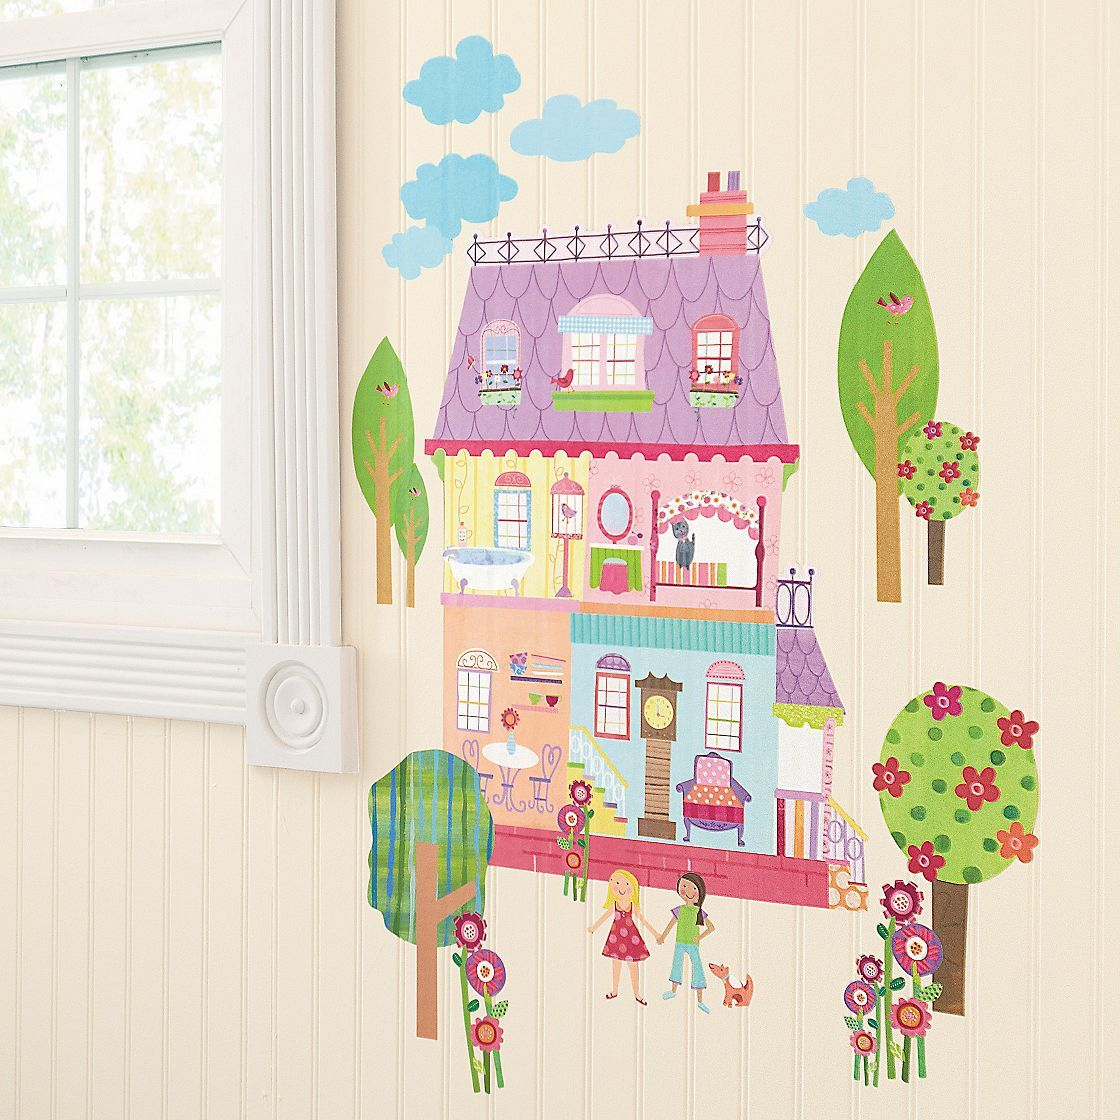 Sr interactive wall art for kids the company store creating